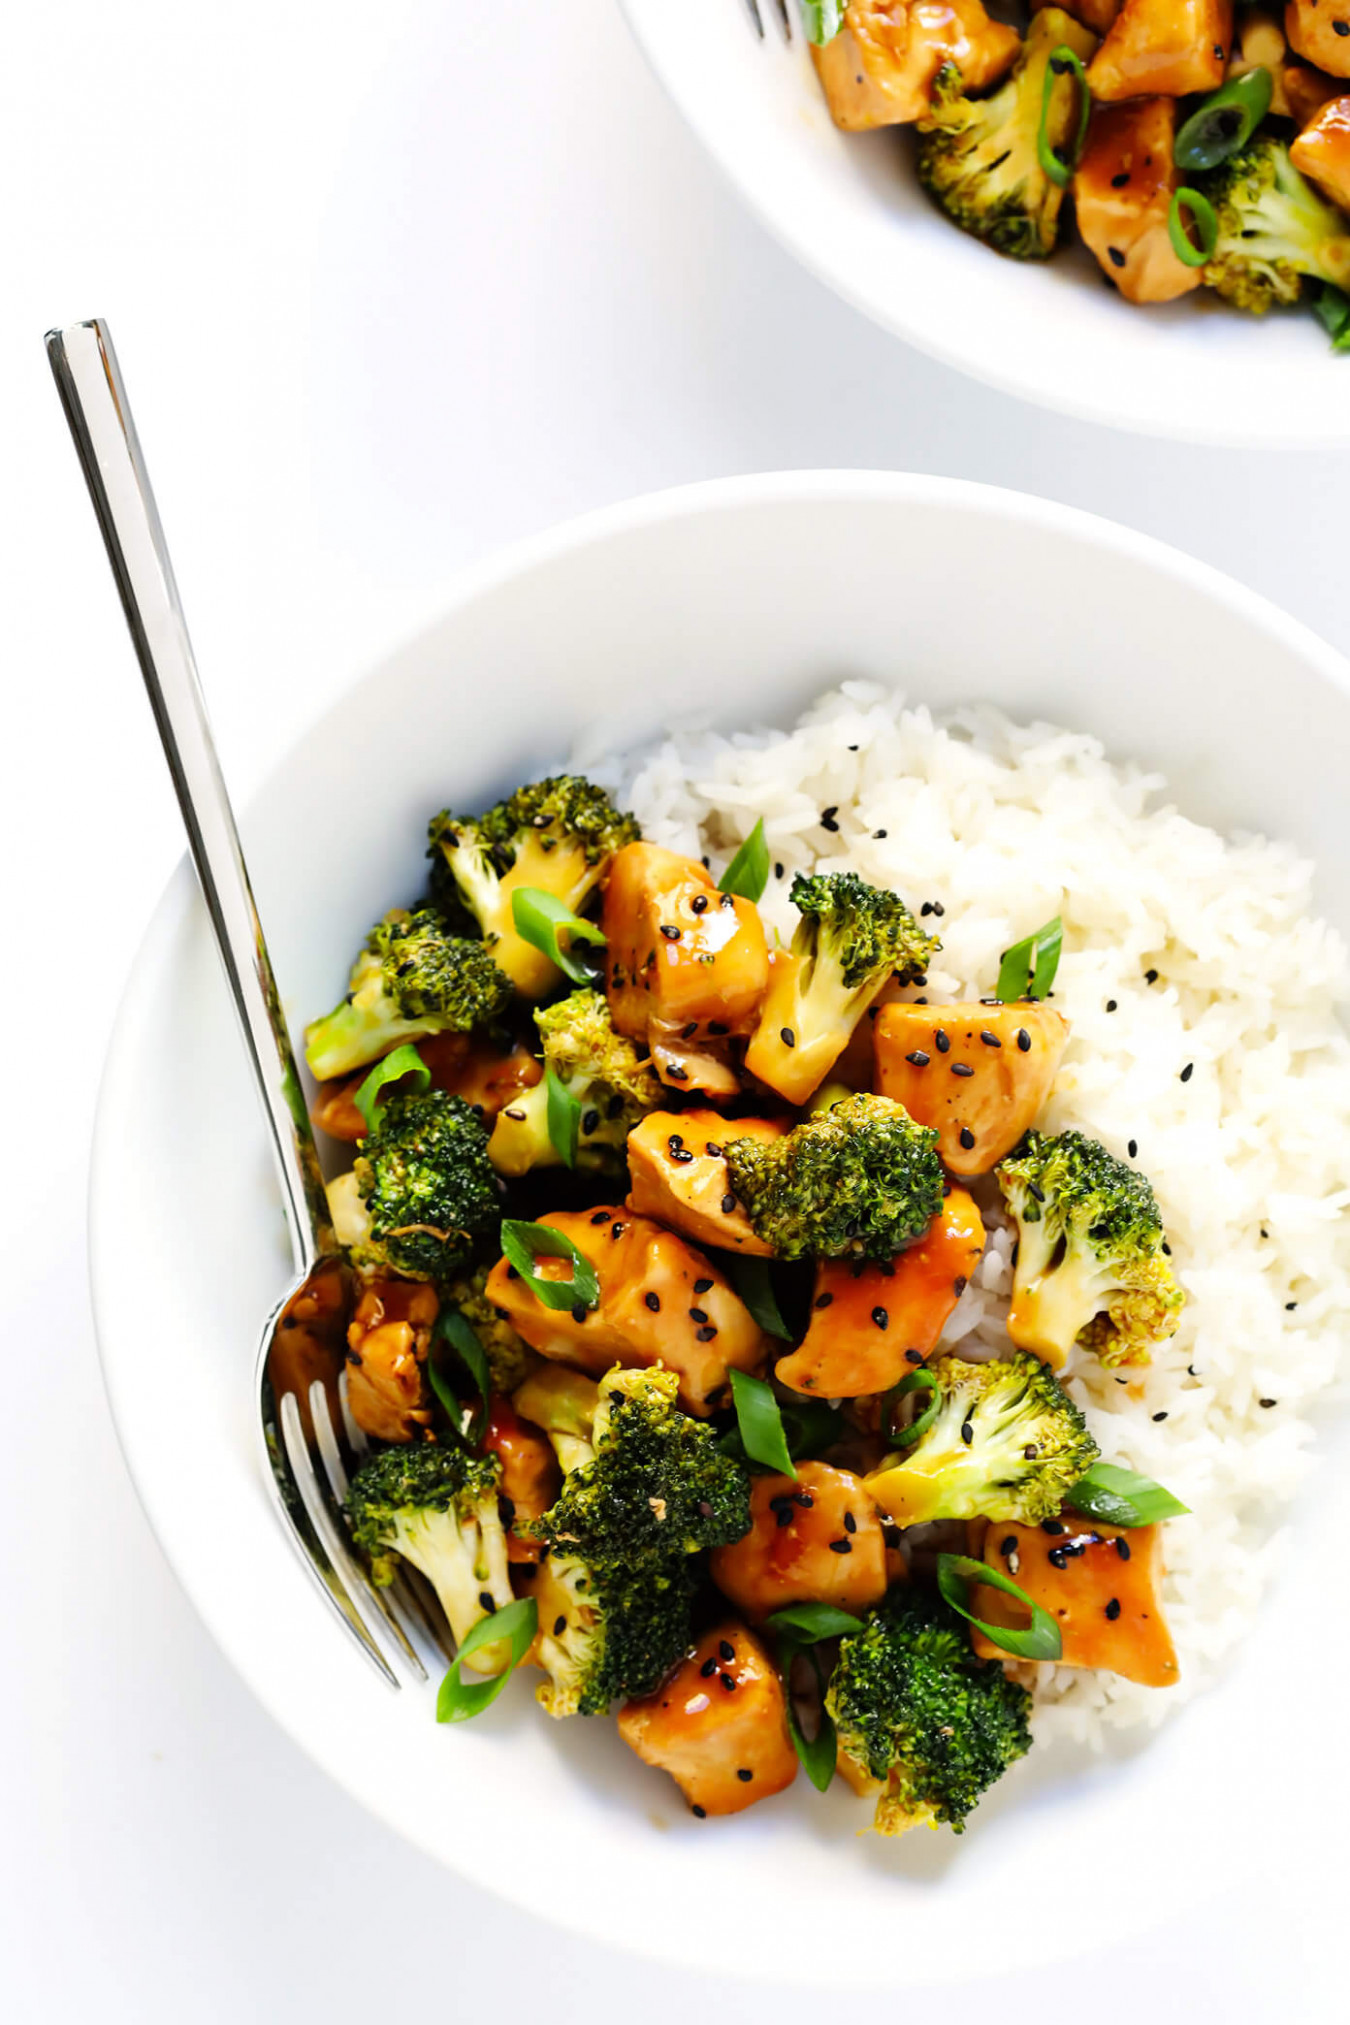 15 Minute Chicken And Broccoli - Chicken Recipes Quick And Easy For Dinner